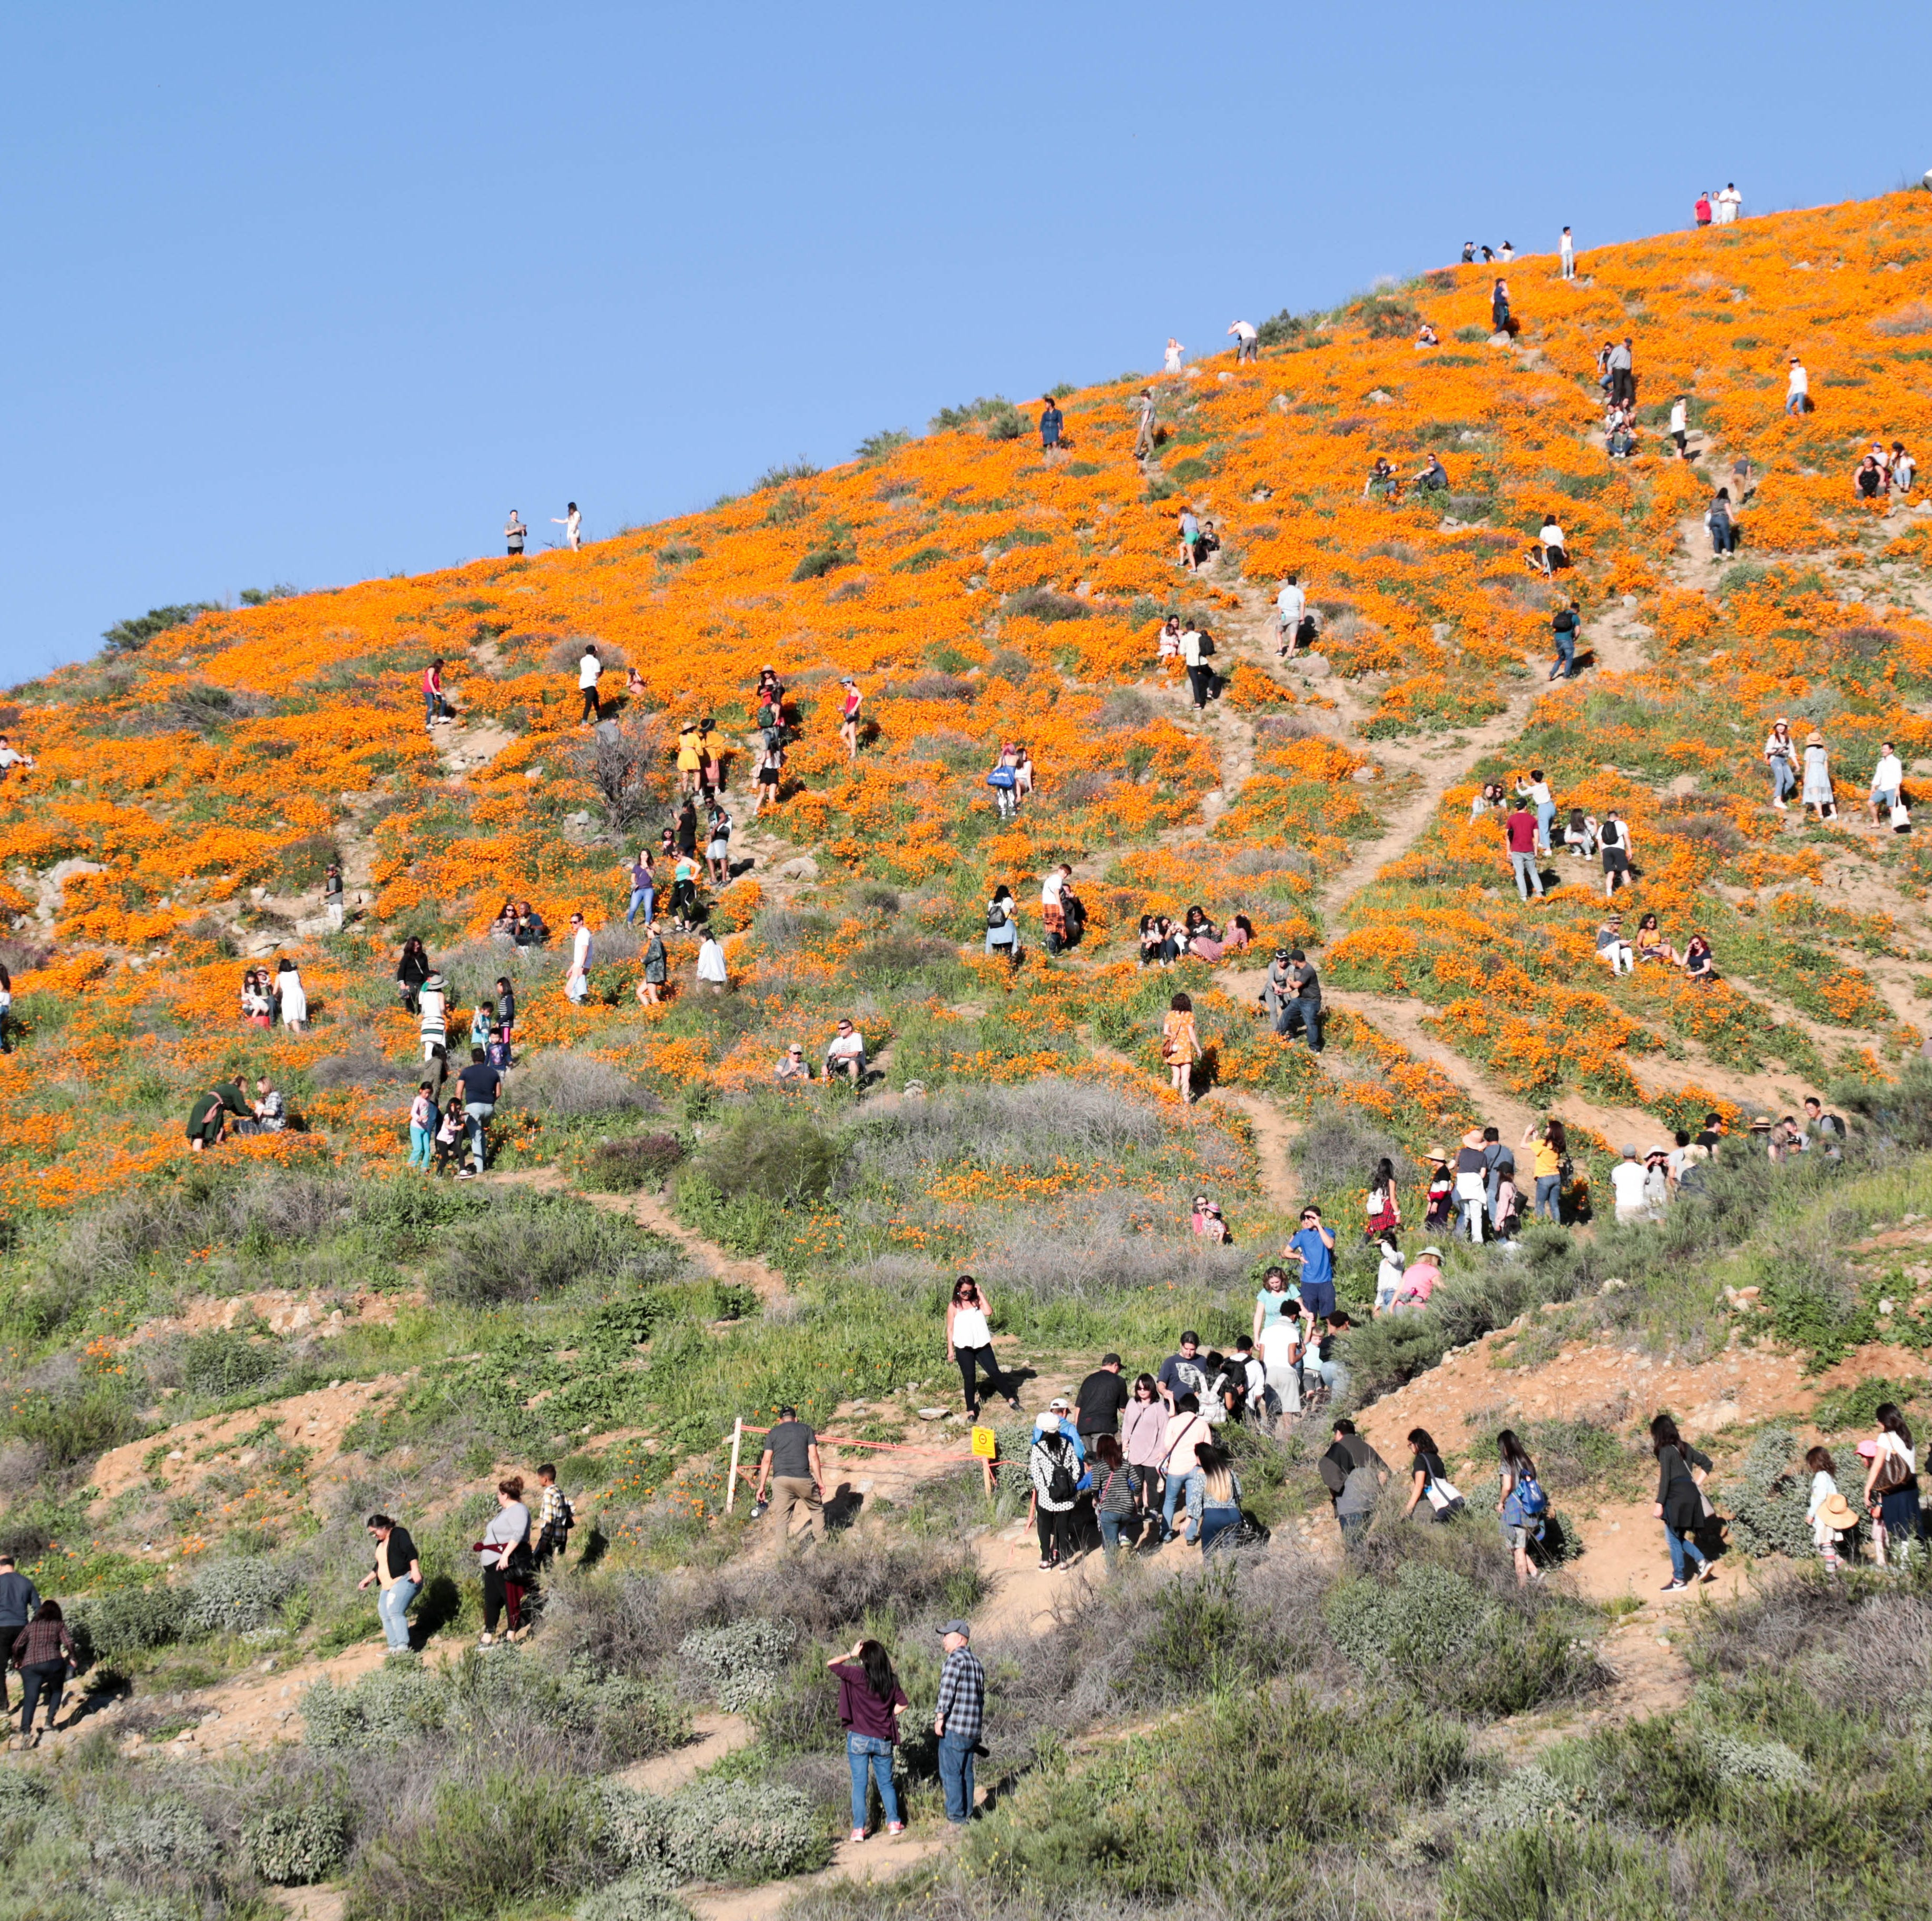 Before you go Instagram the California poppies, let's talk about safety 101